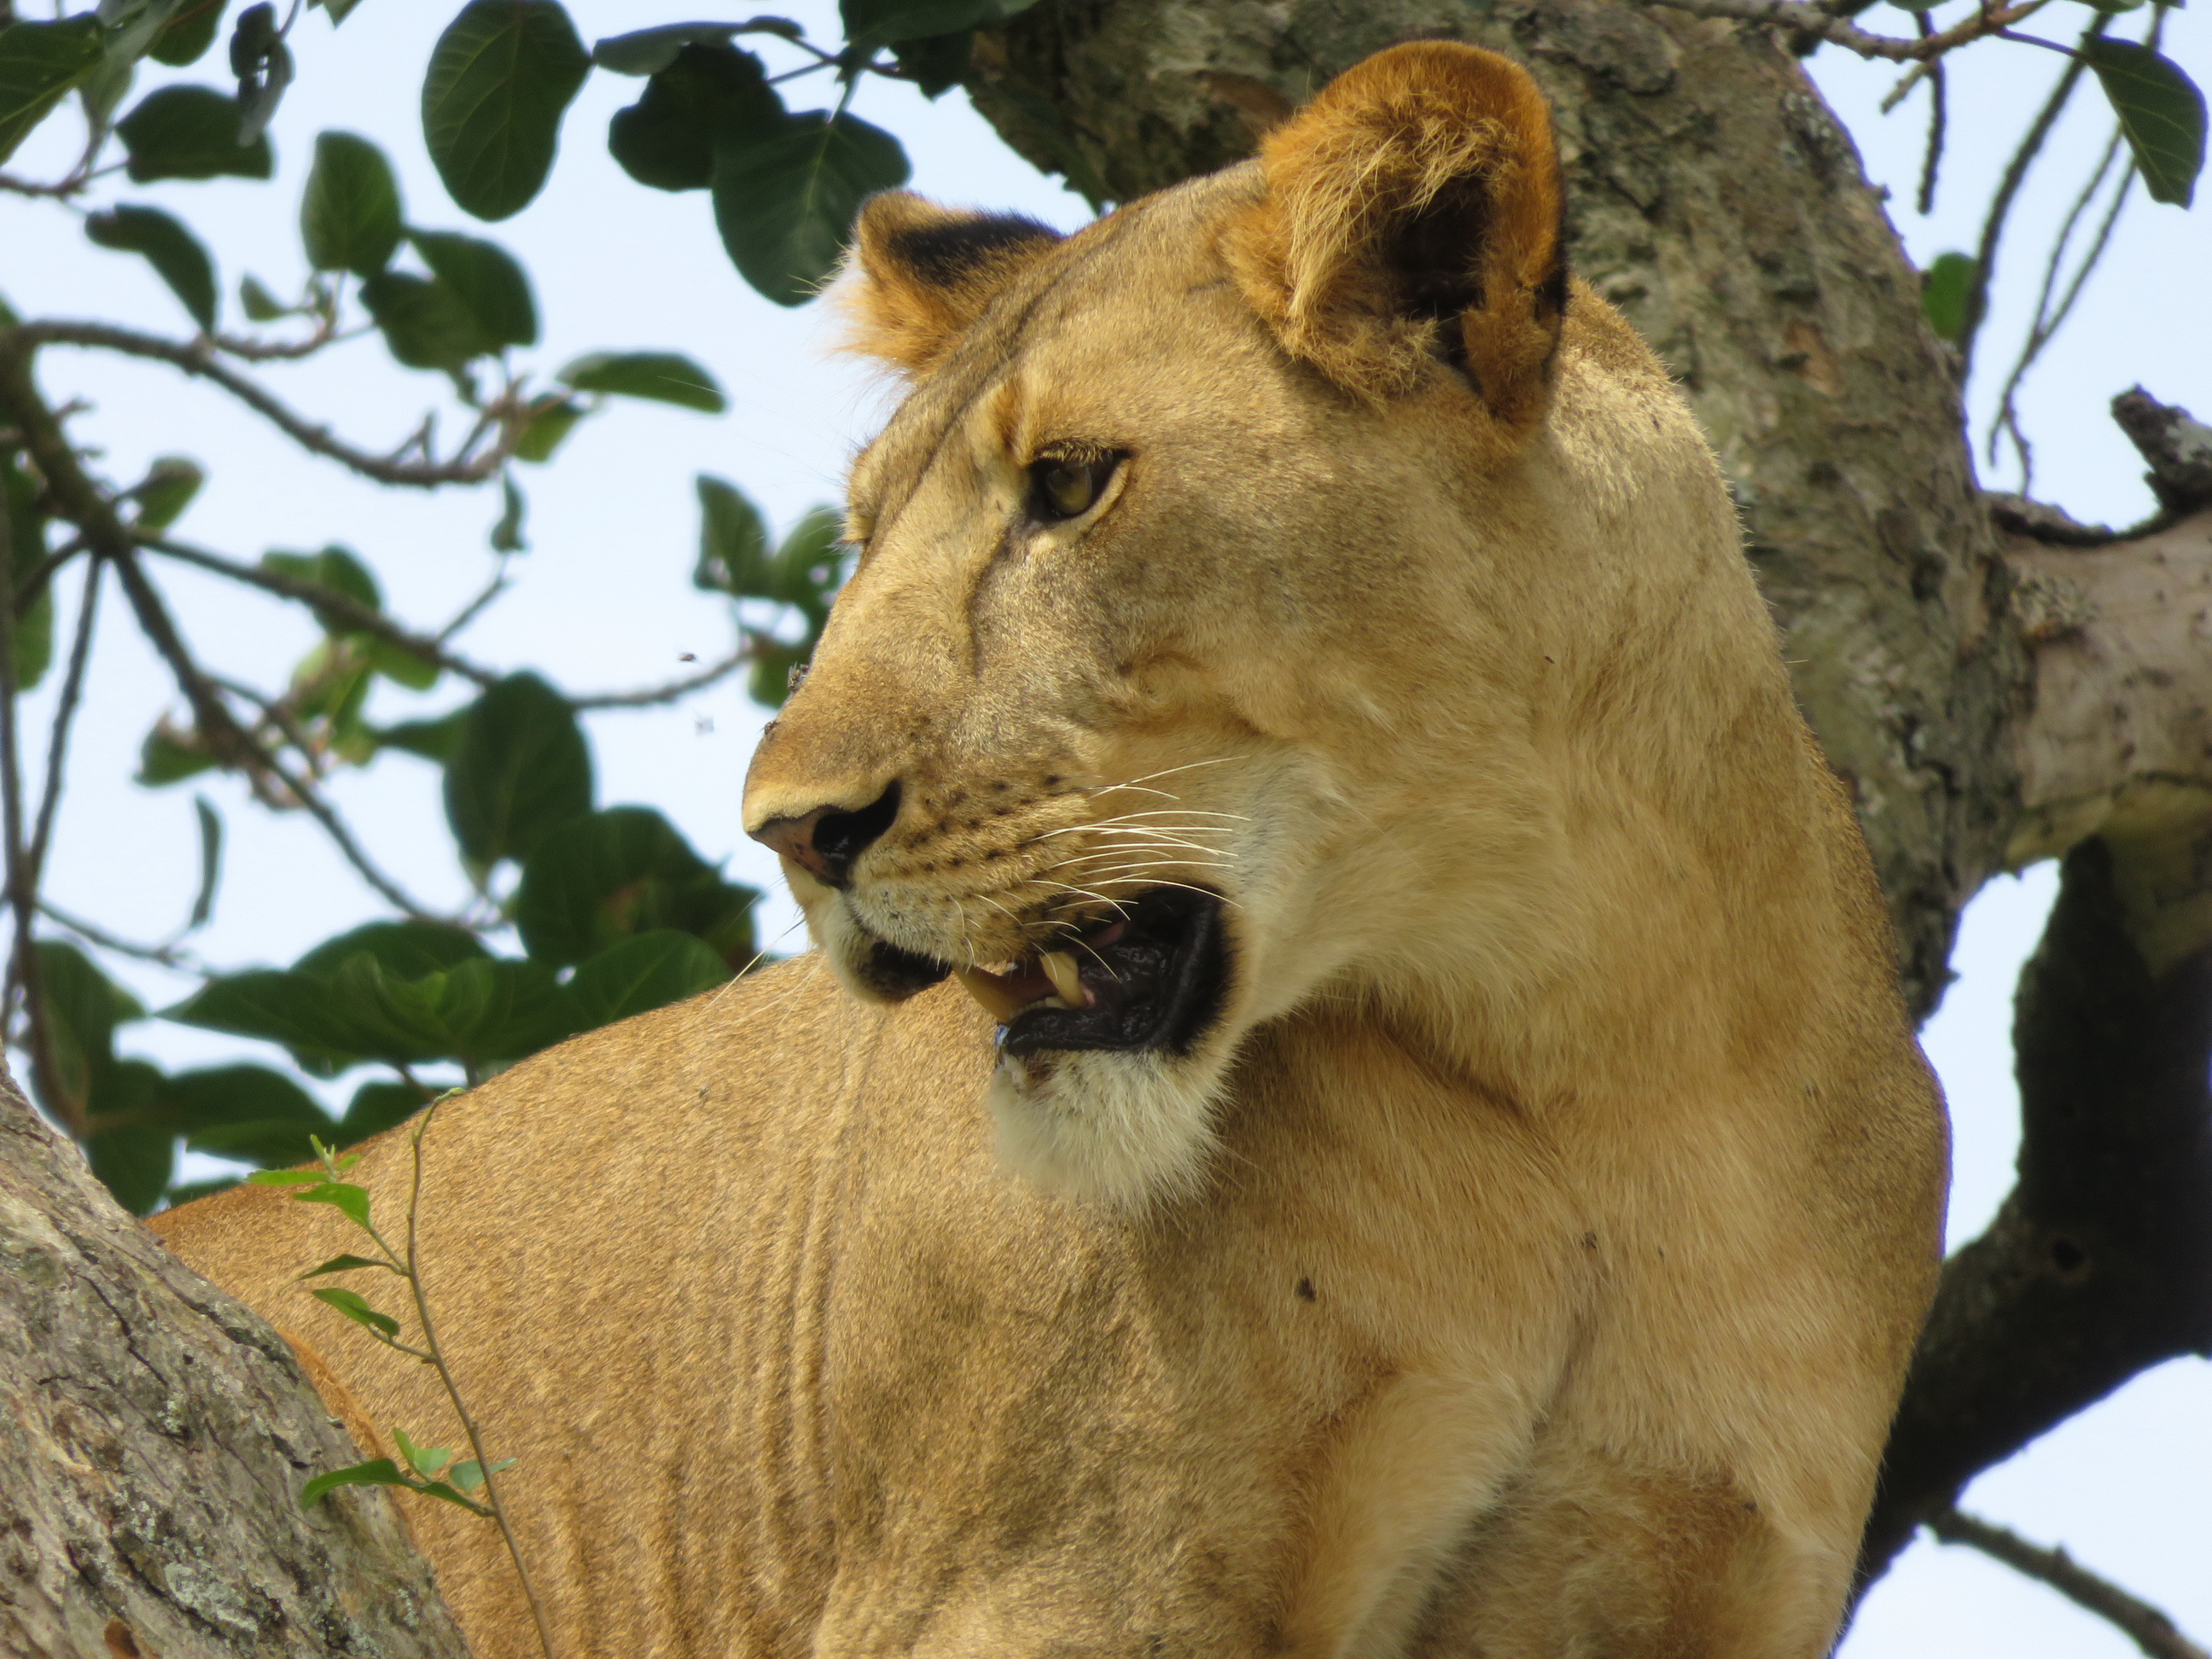 Marvellous tree-climbing lion photo - by Vivienne Lewis